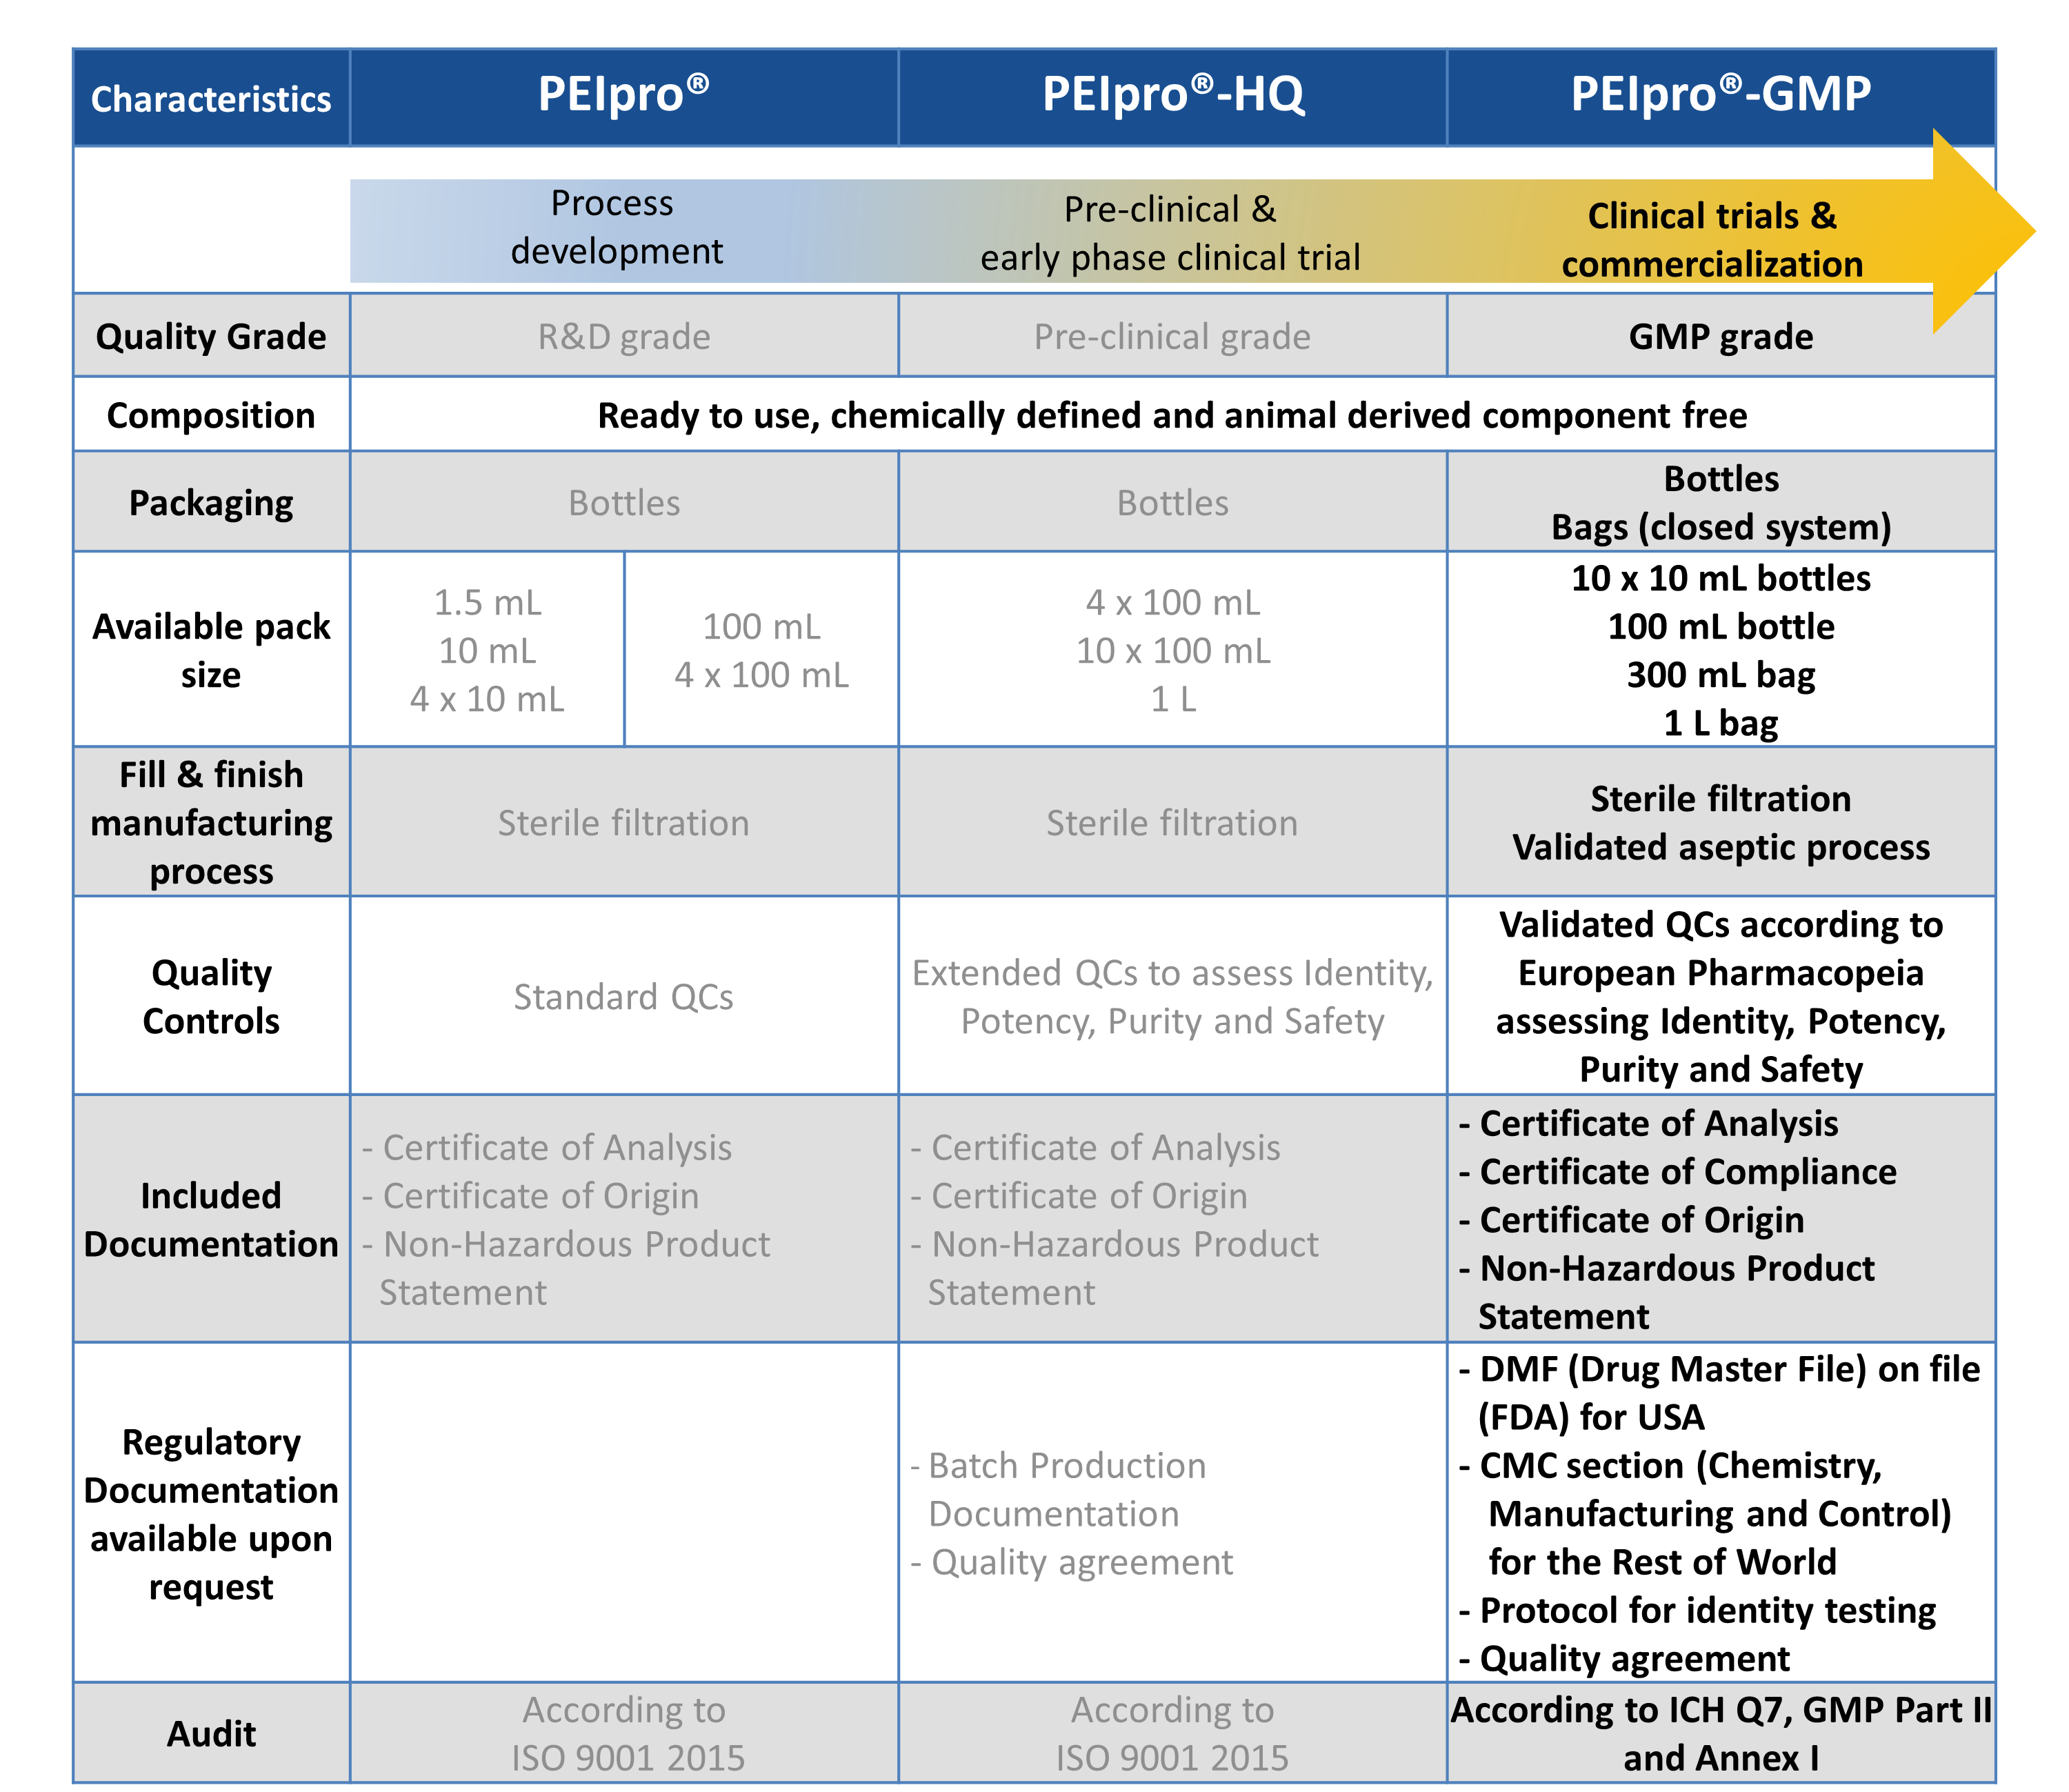 PEIpro-GMP - PEIpro range comparison table